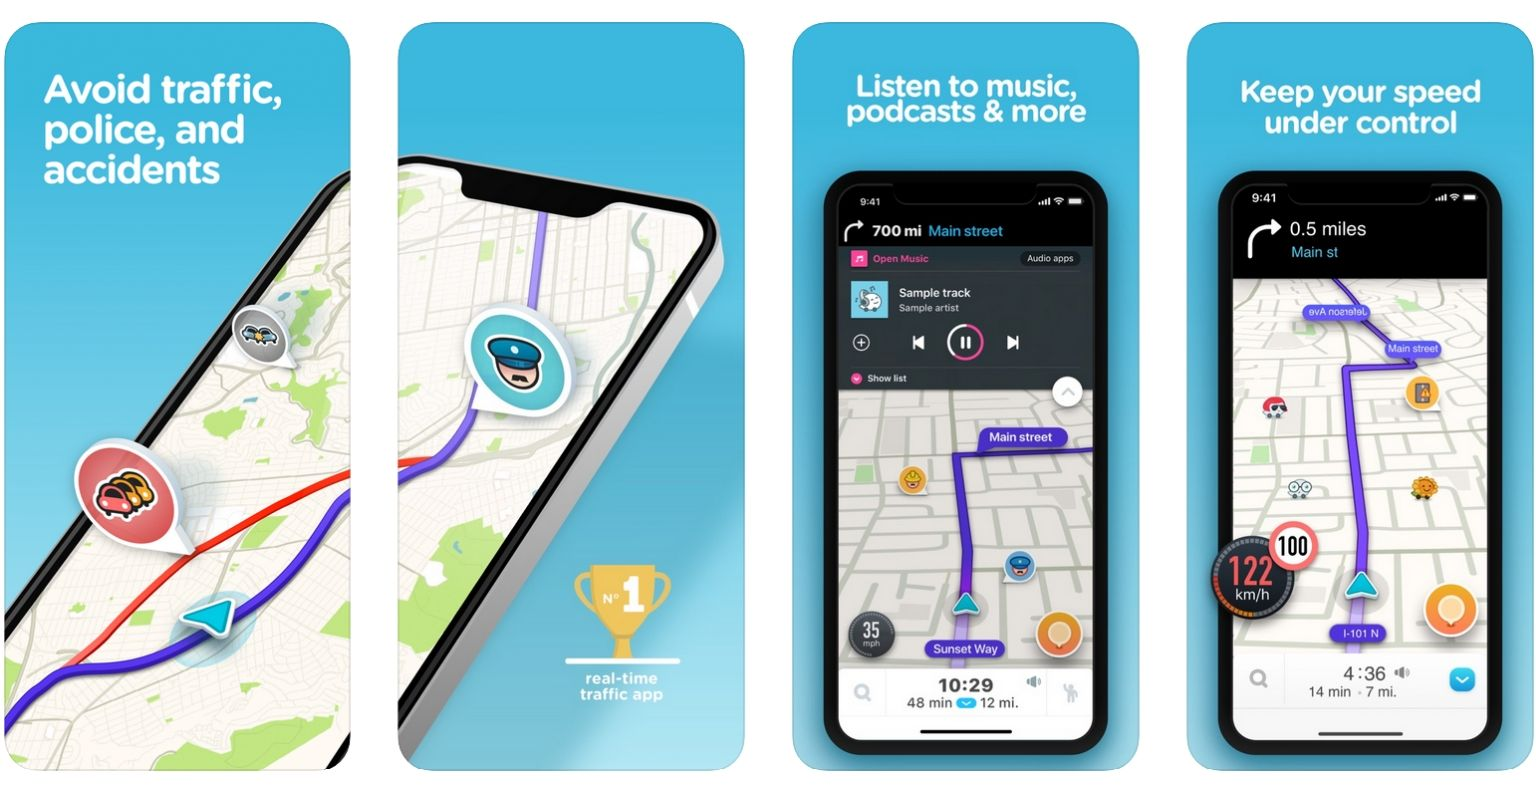 Meilleures applications pour Architectes - Waze